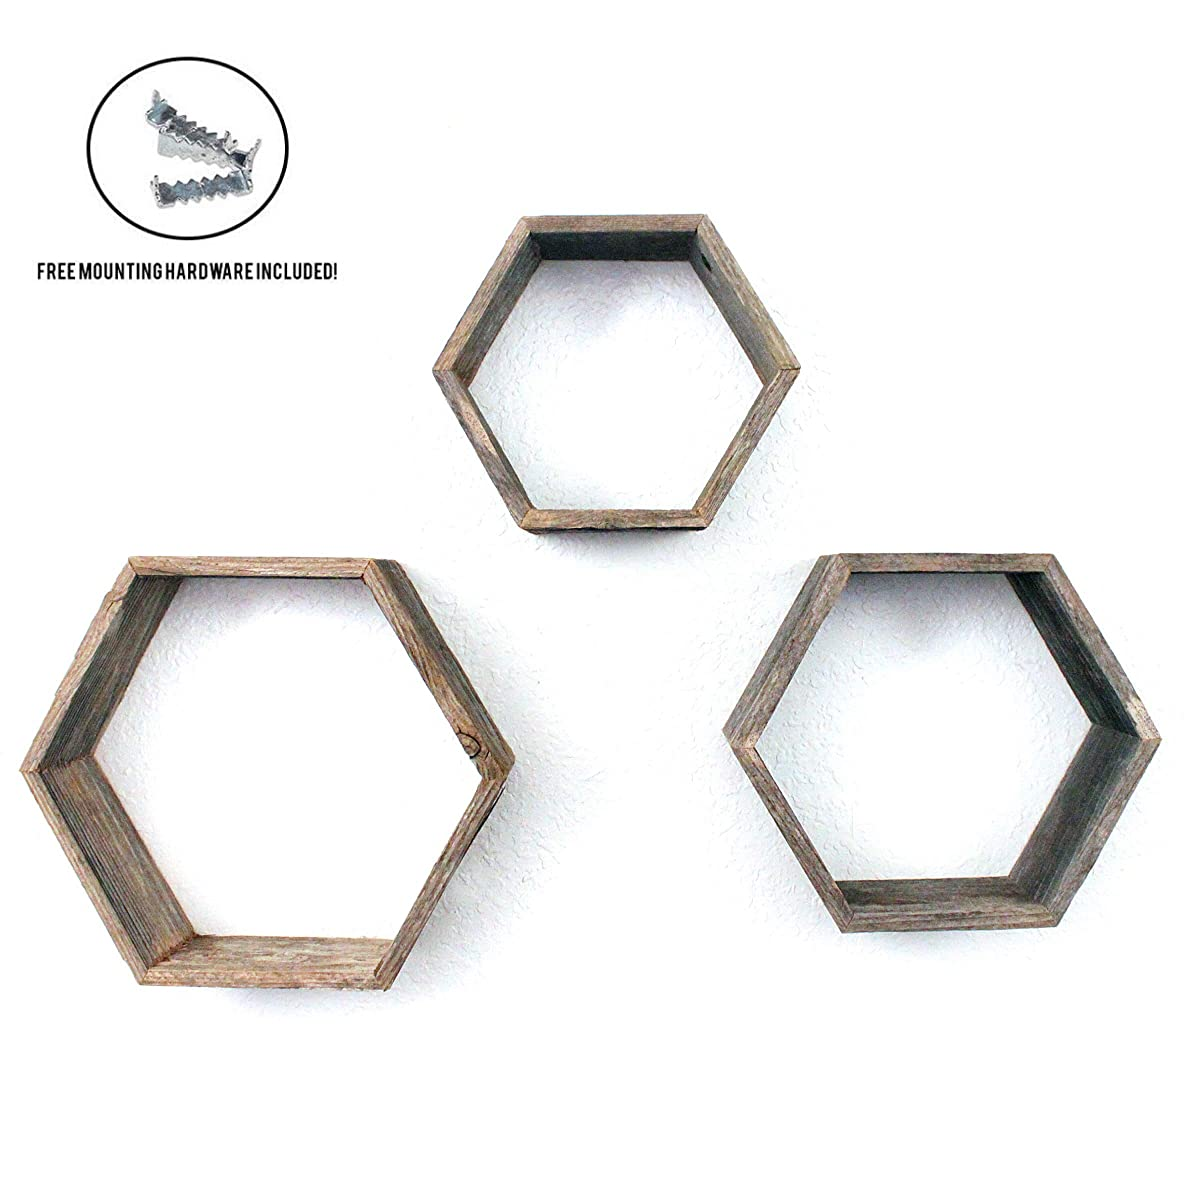 BarnwoodUSA | Rustic Farmhouse Floating Hexagon Shelves | Made of 100% Reclaimed and Recycled Wood | Open Shadow Box Style to Display Pieces or Show Off by Themselves | Weathered Gray